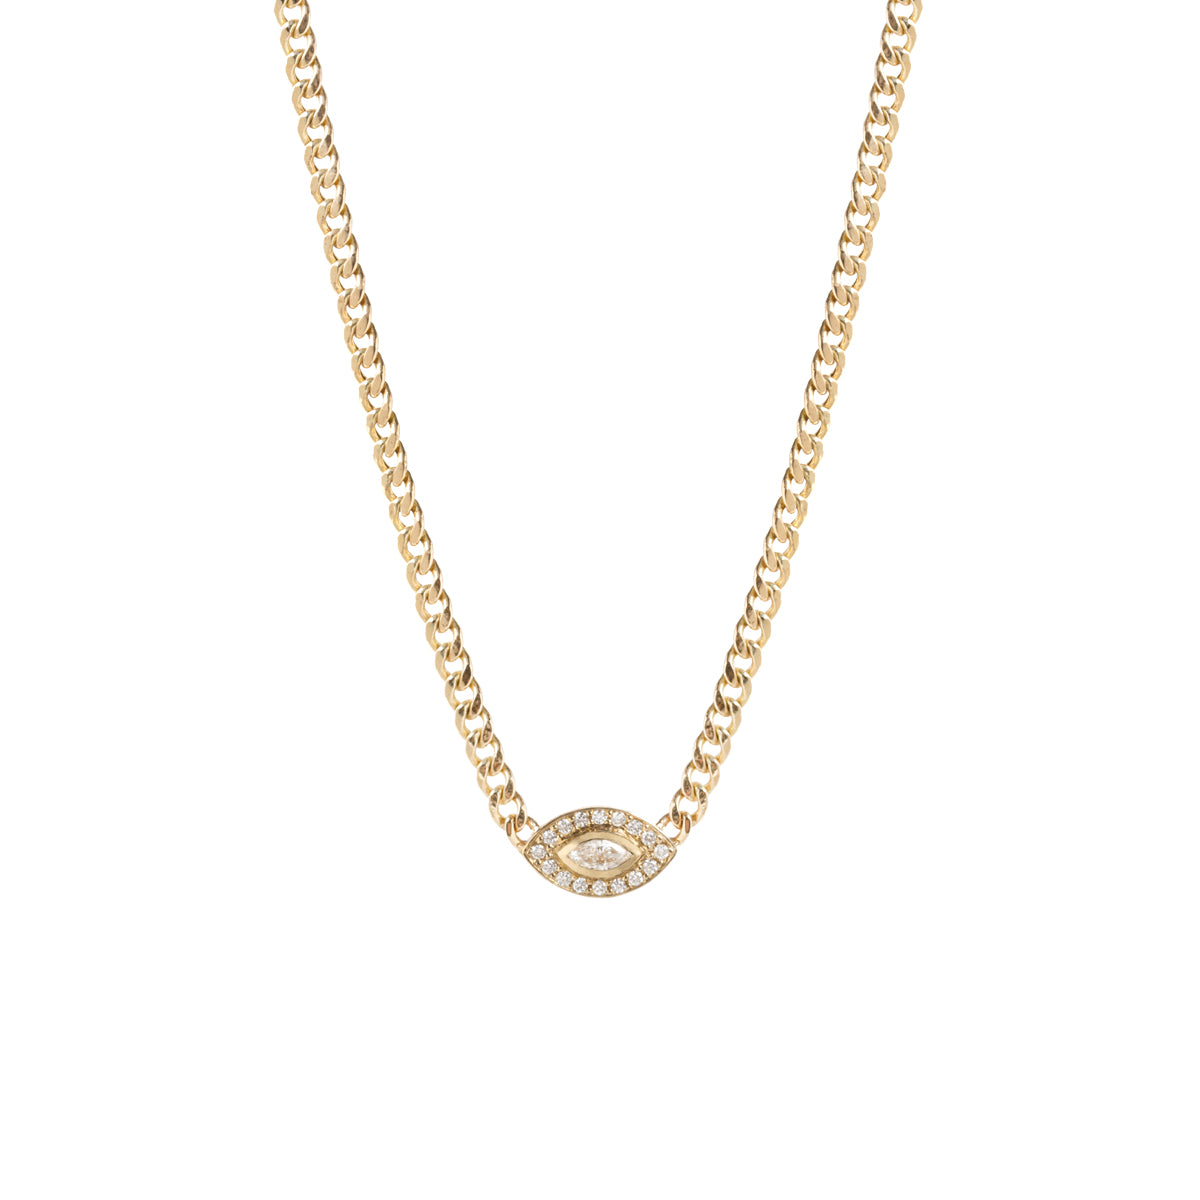 14k gold diamond halo necklace with a marquis diamond eye